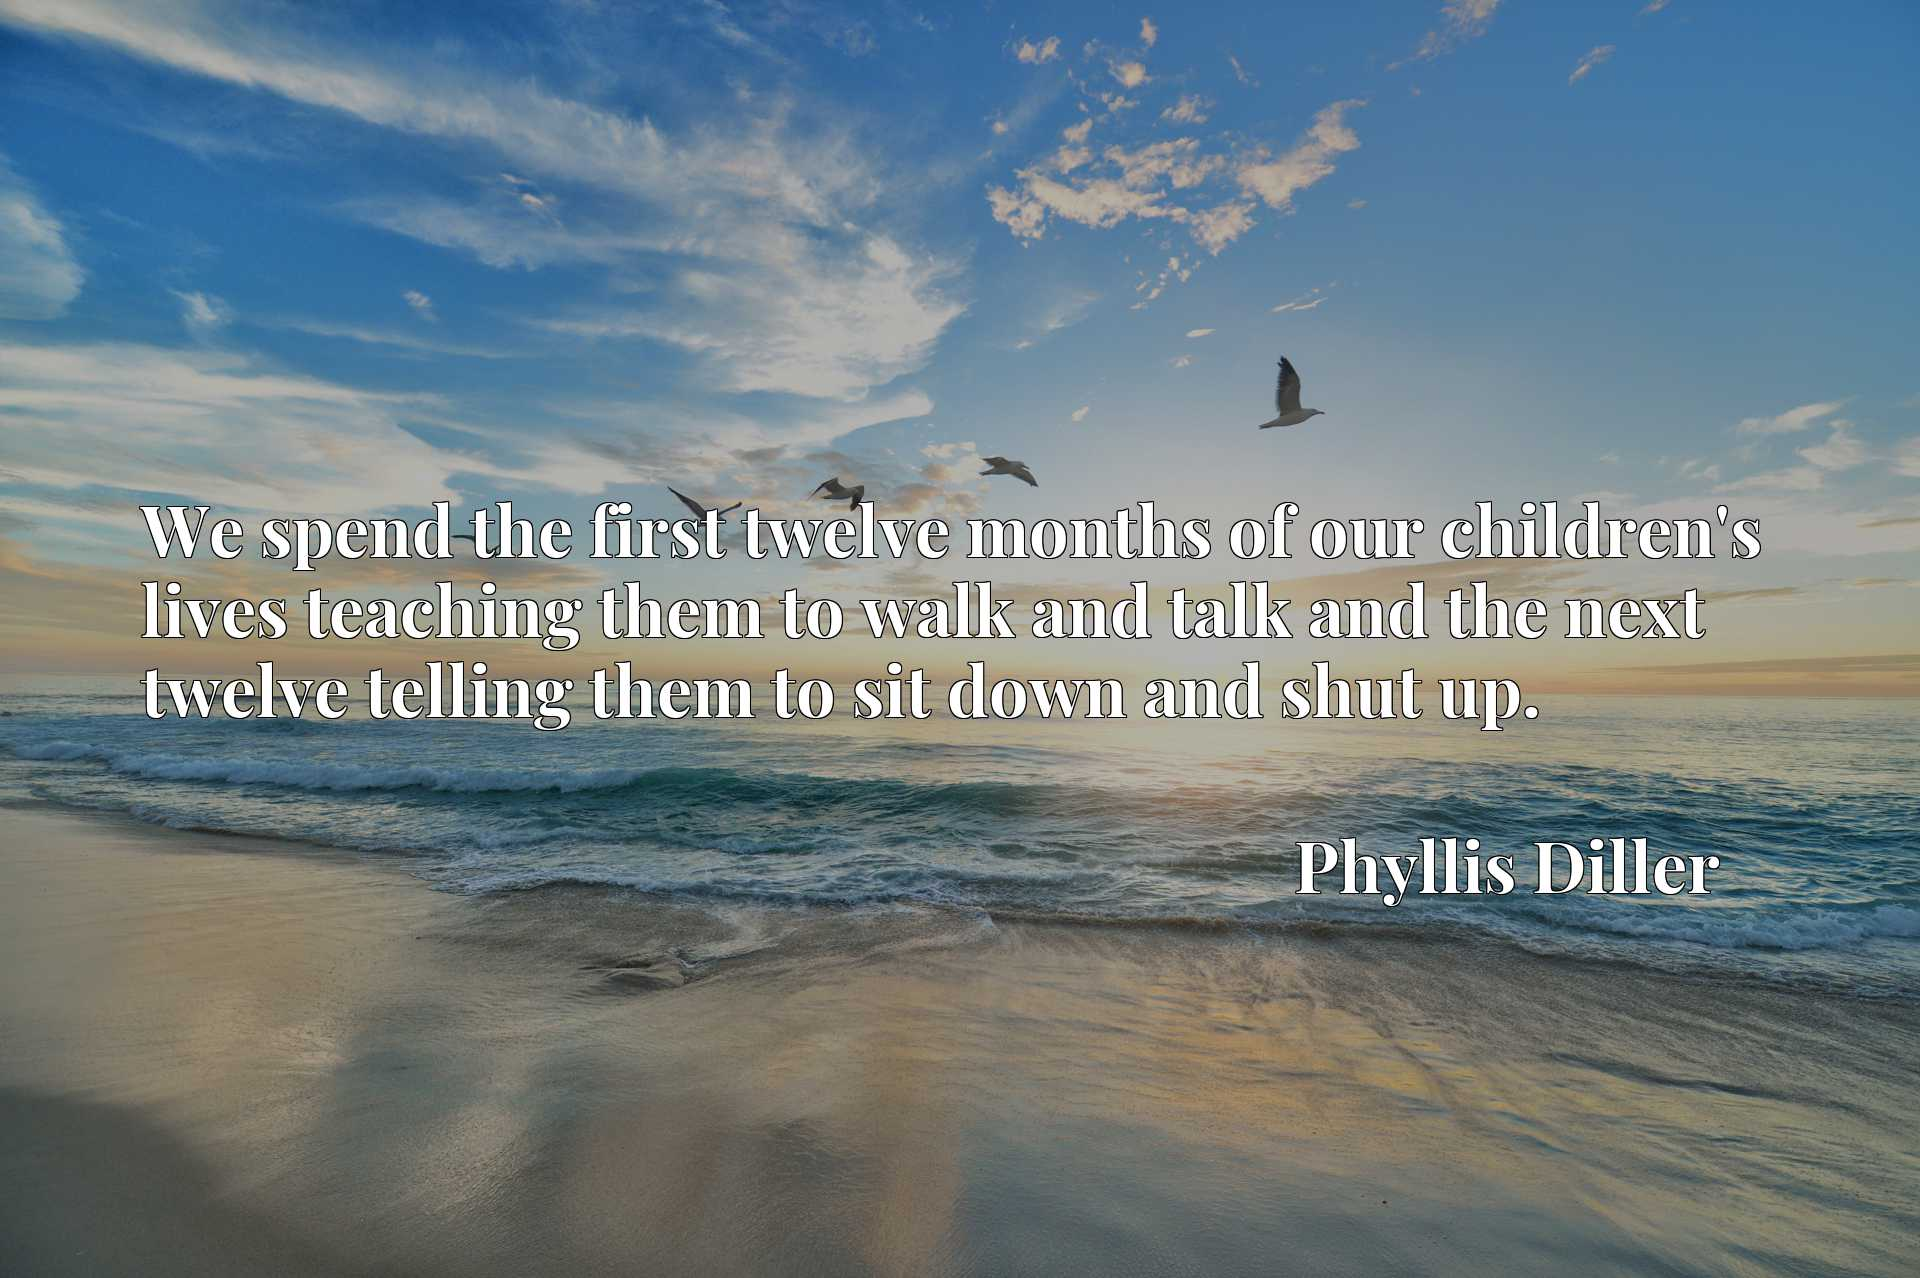 Quote Picture :We spend the first twelve months of our children's lives teaching them to walk and talk and the next twelve telling them to sit down and shut up.